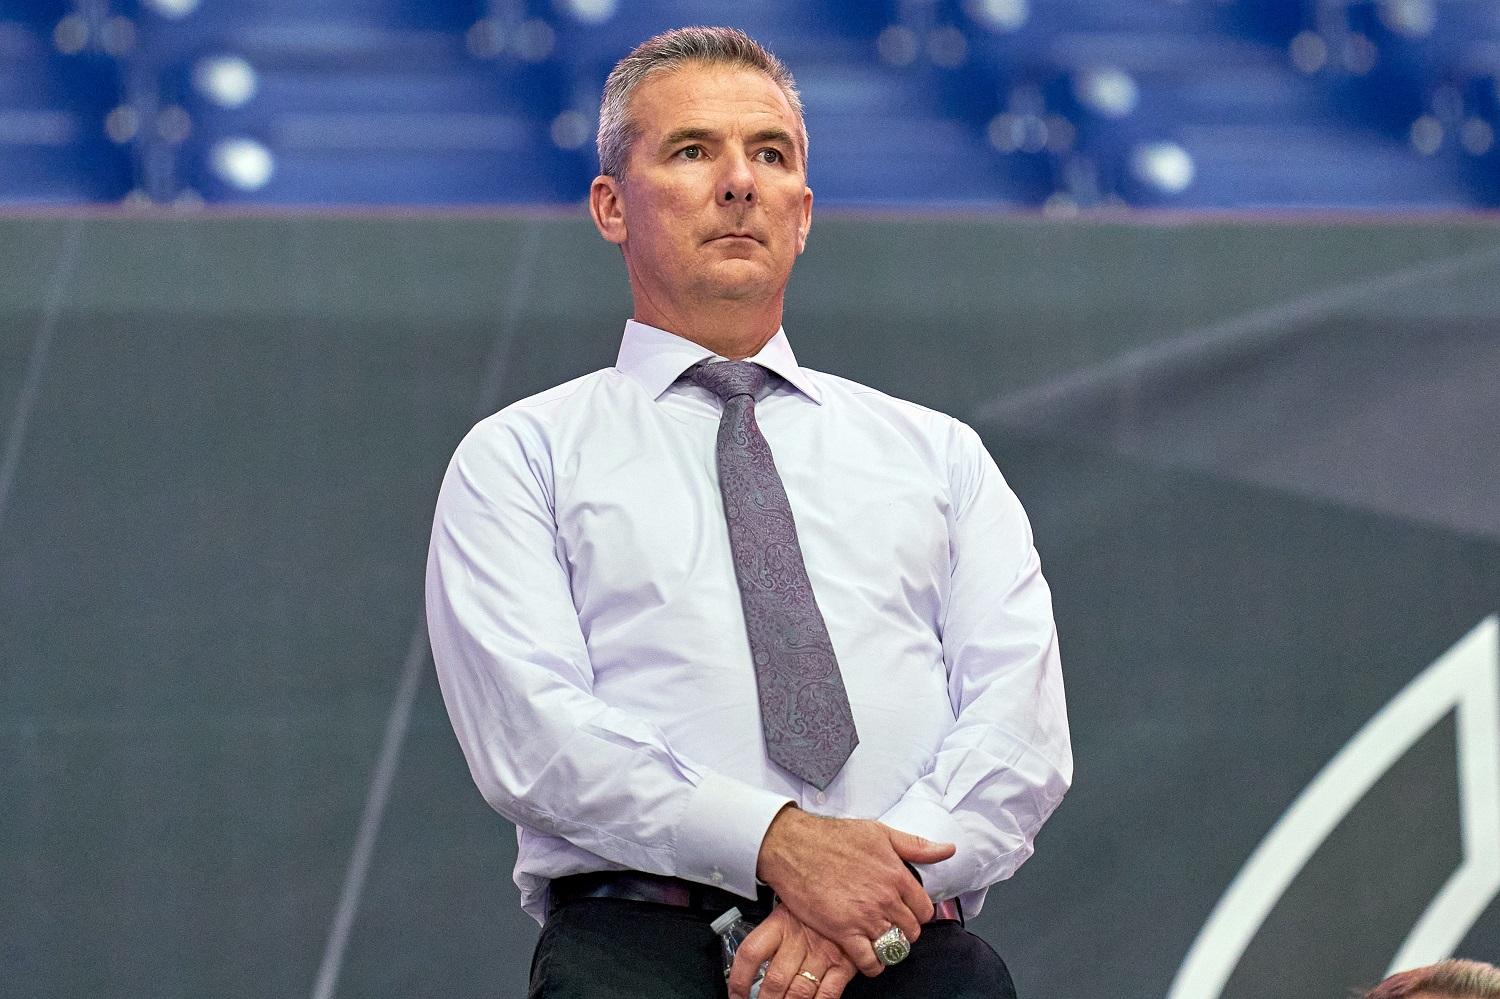 Urban Meyer was named coach of the NFL's Jacksonville Jaguars om Jan. 14, 2021